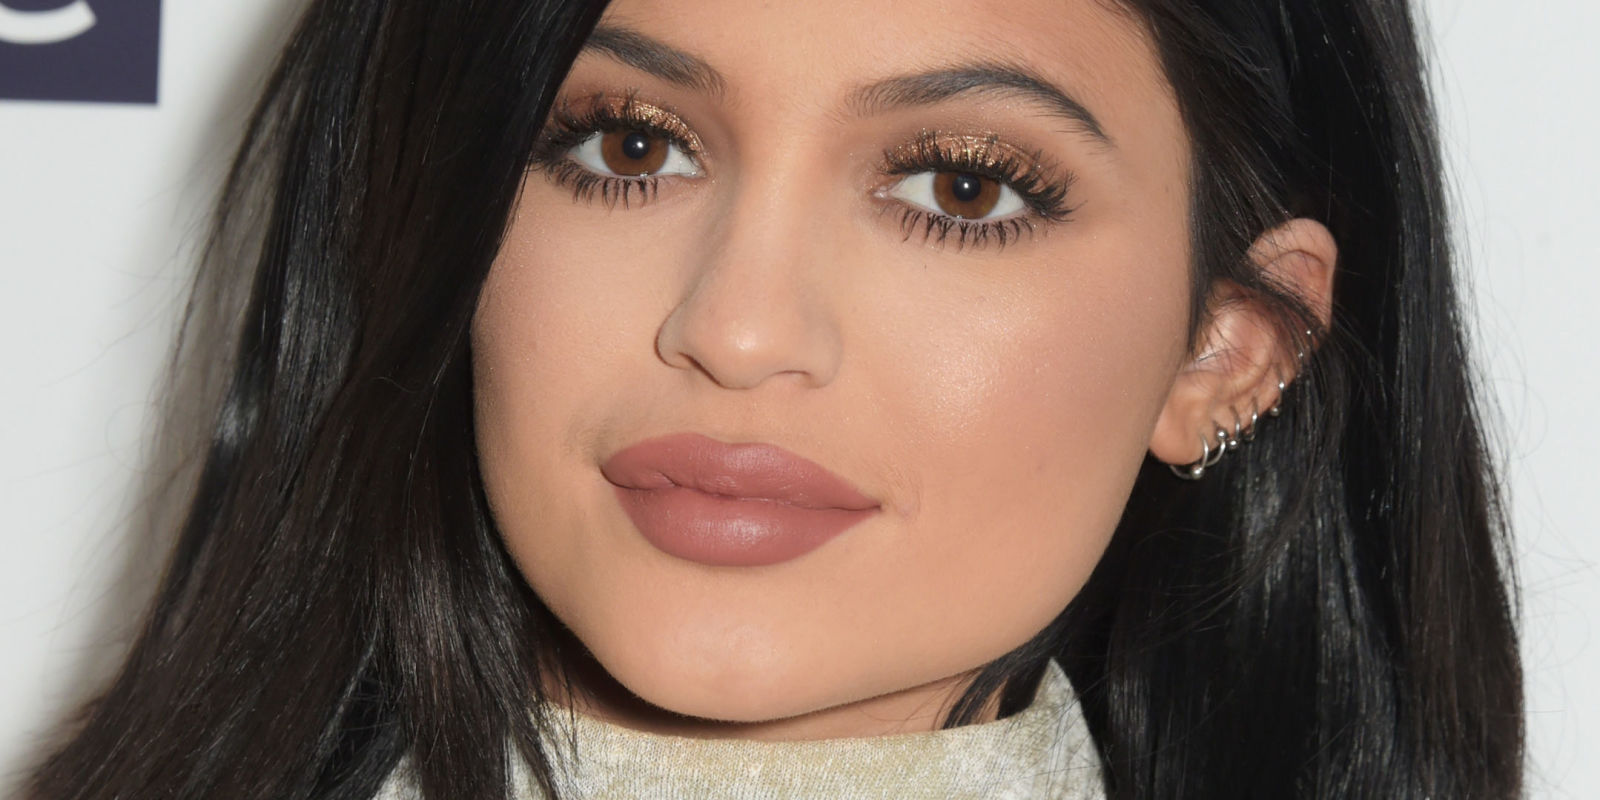 What she uses for that pout : - Mac lip liner in Whirl